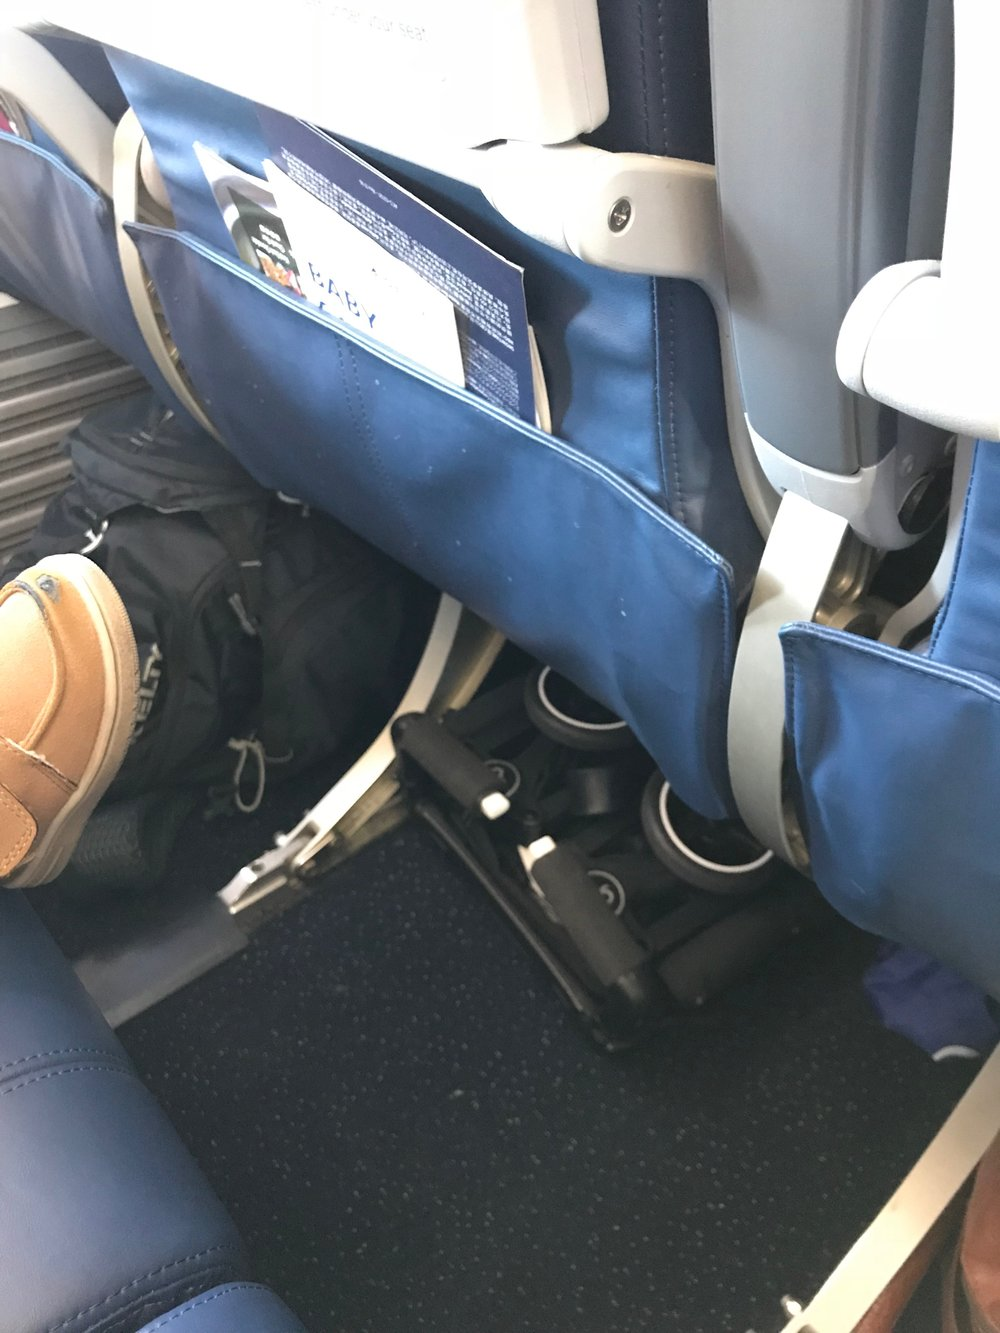 Our tiny GB Pockit Stroller underneath the airplane seat